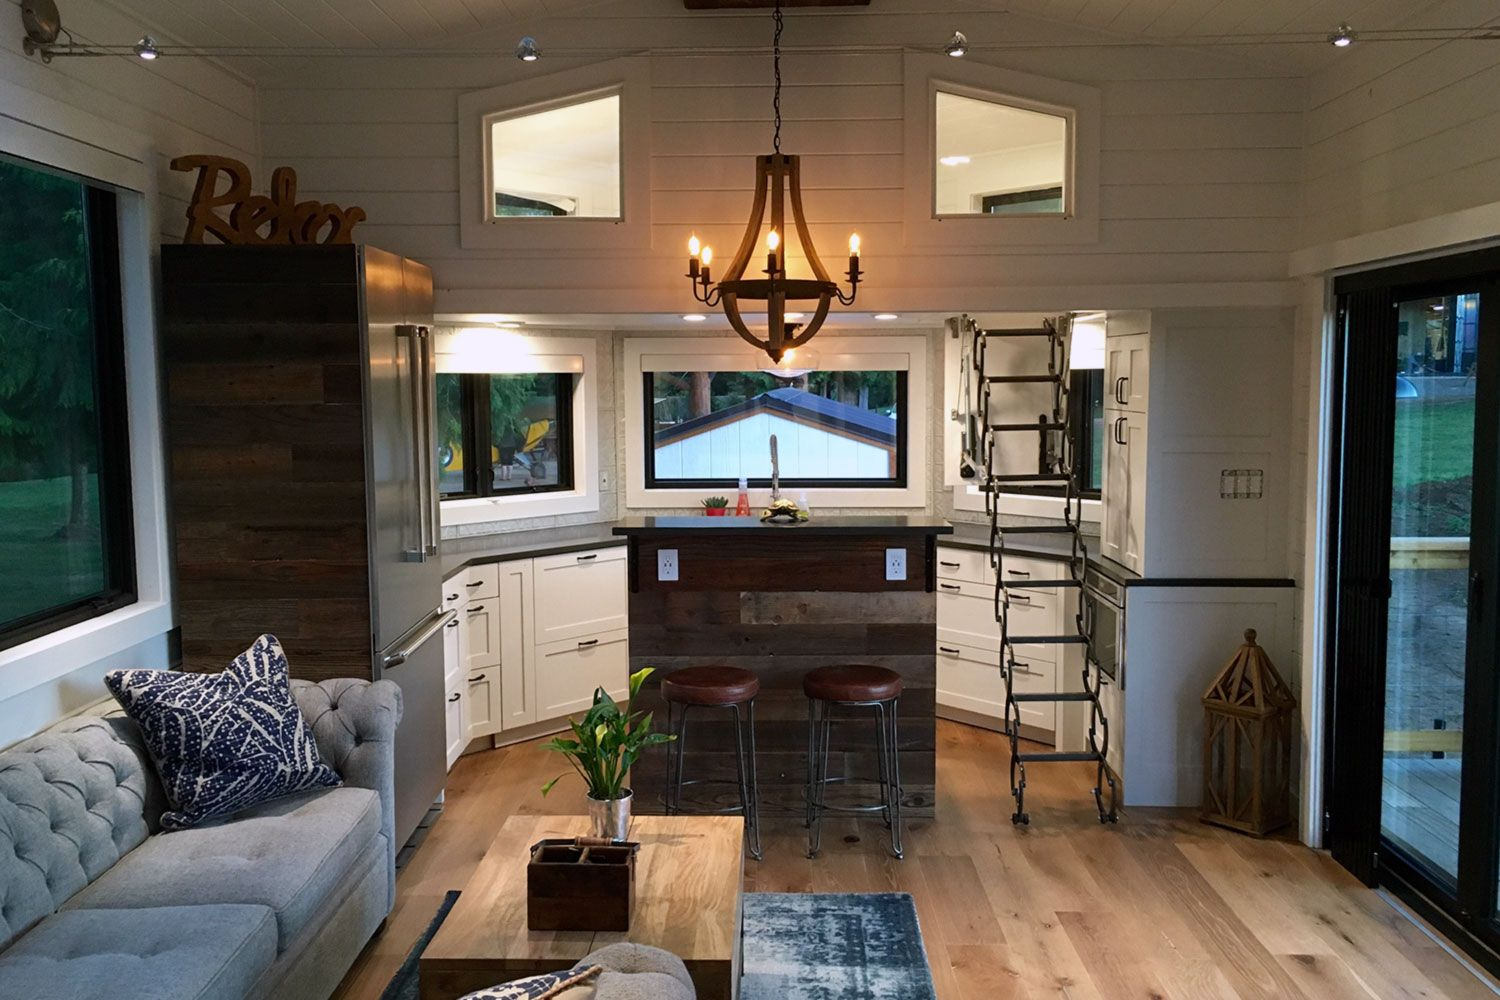 View toward kitchen the alpha tiny home by new frontier tiny homes - A Stunning Tiny House On Wheels By Tiny Heirloom